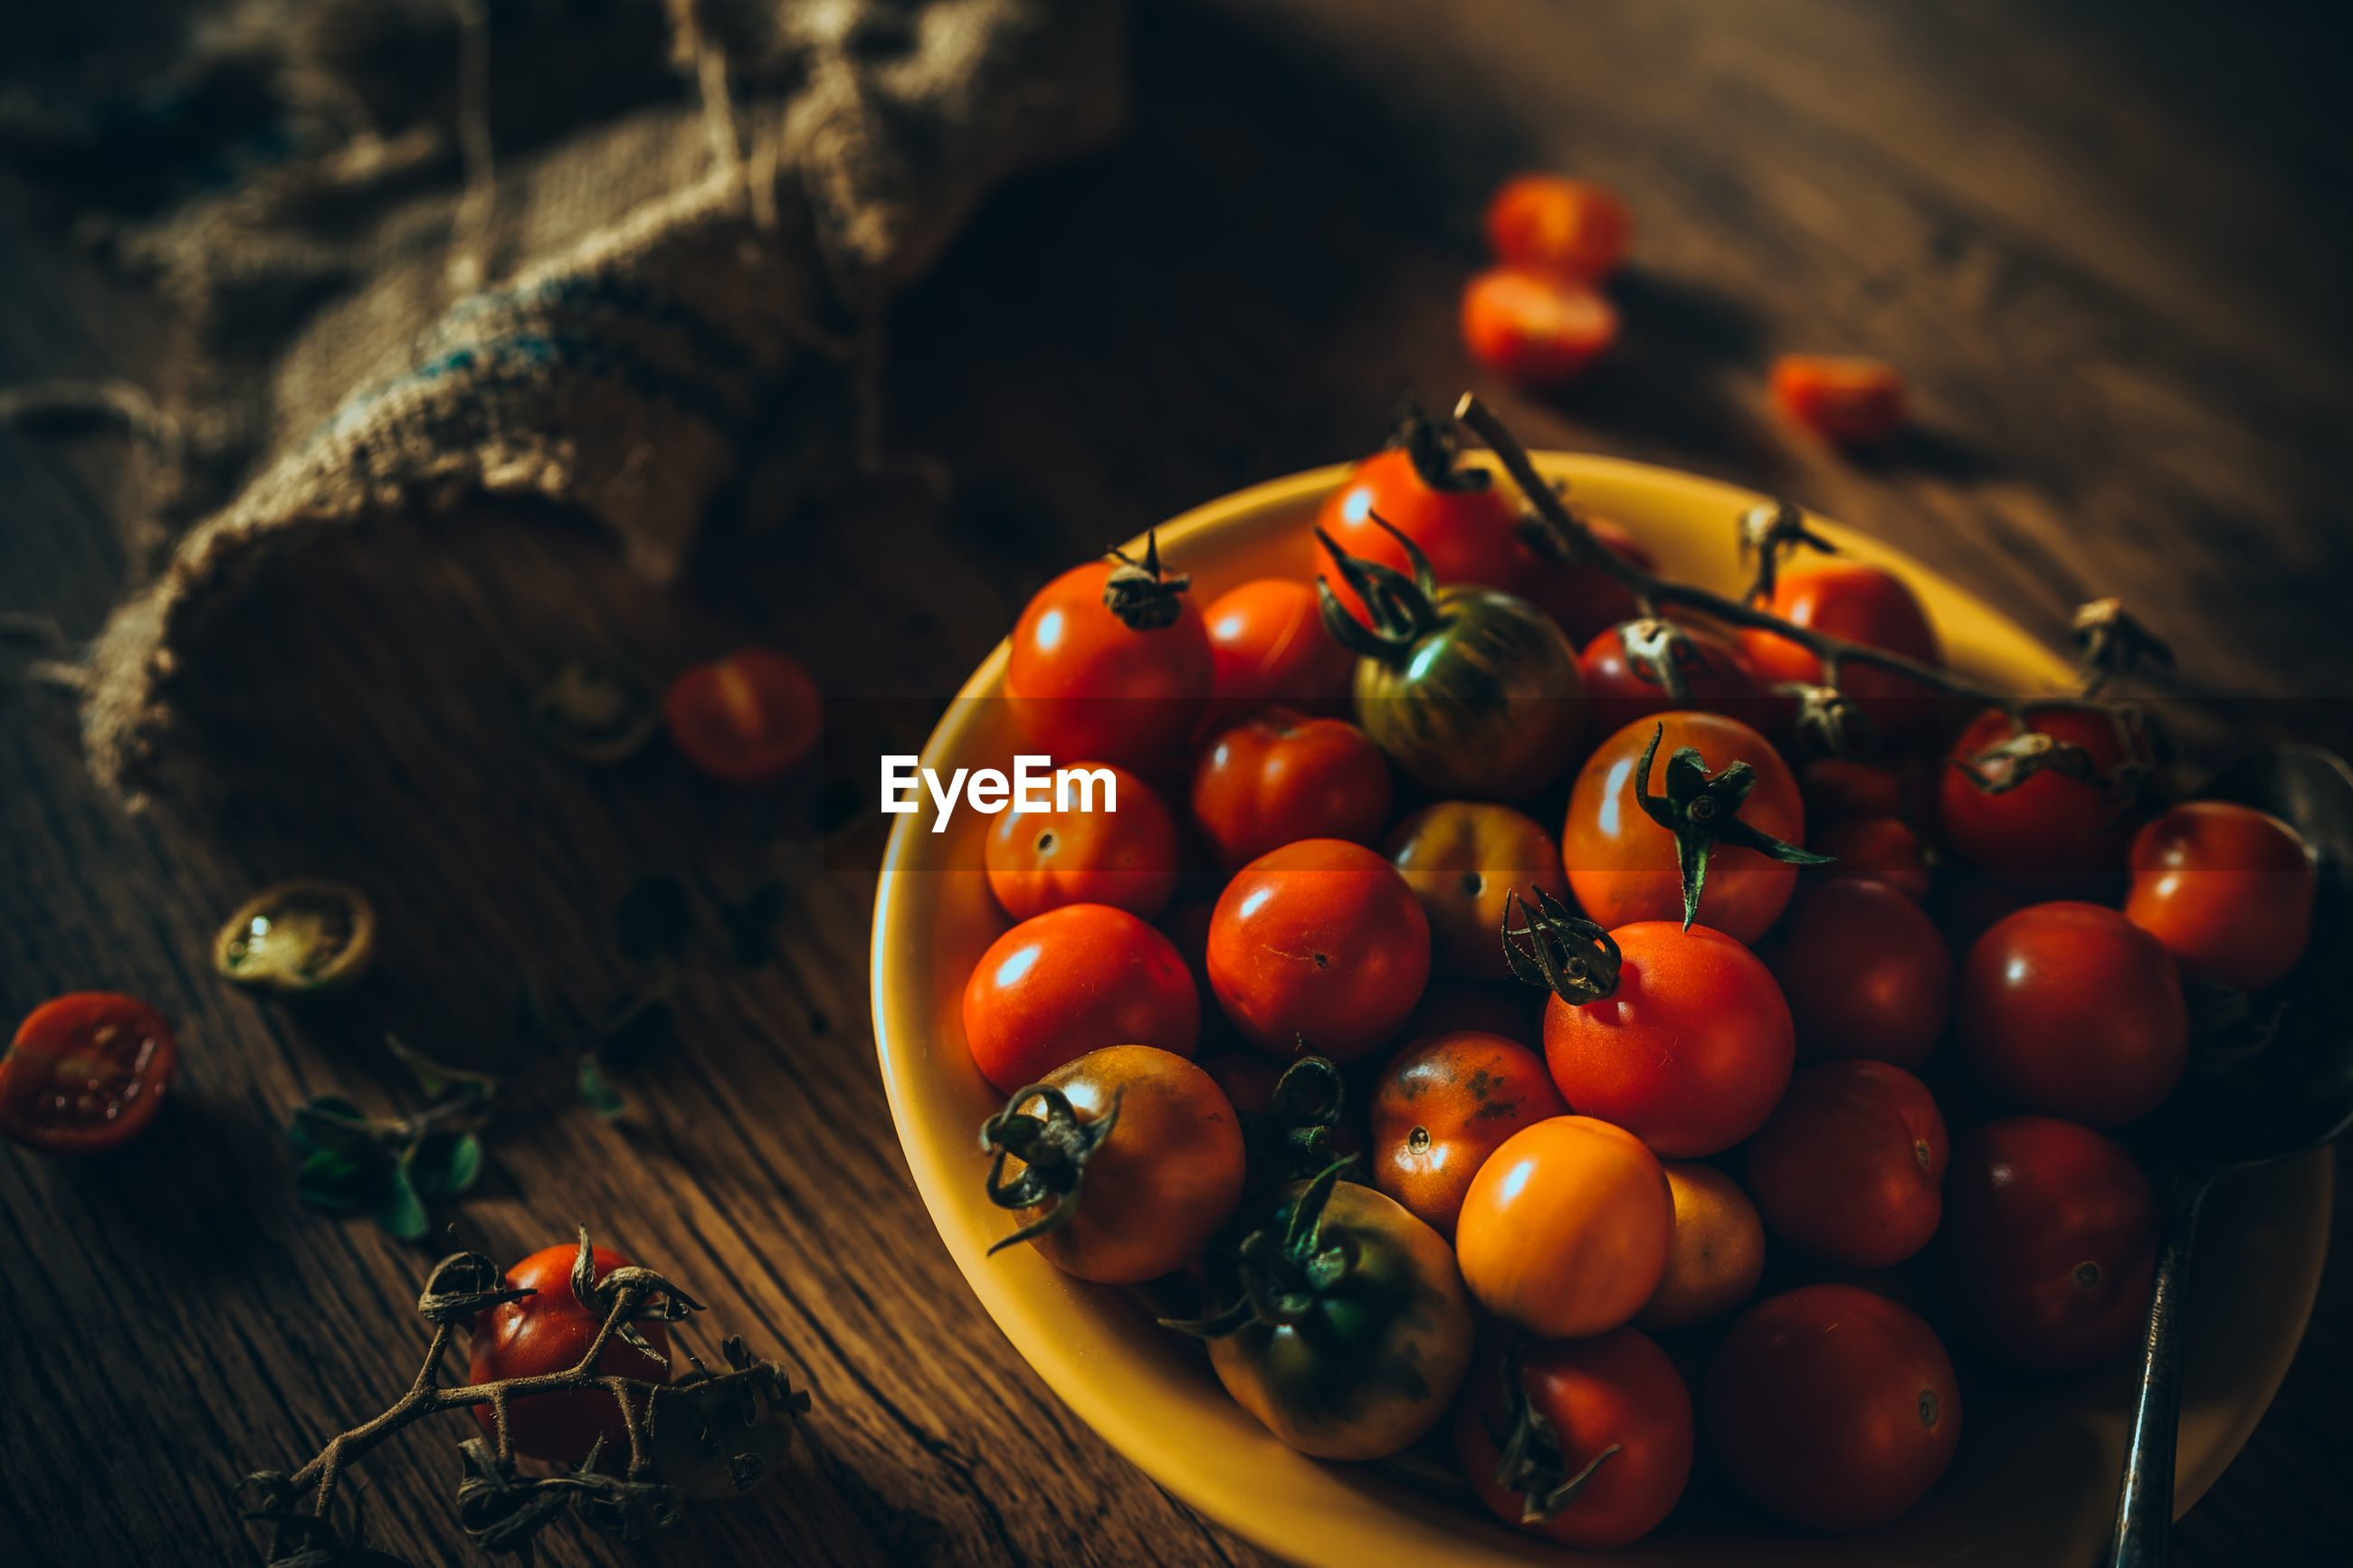 Close-up of cherry tomatoes in bowl on table